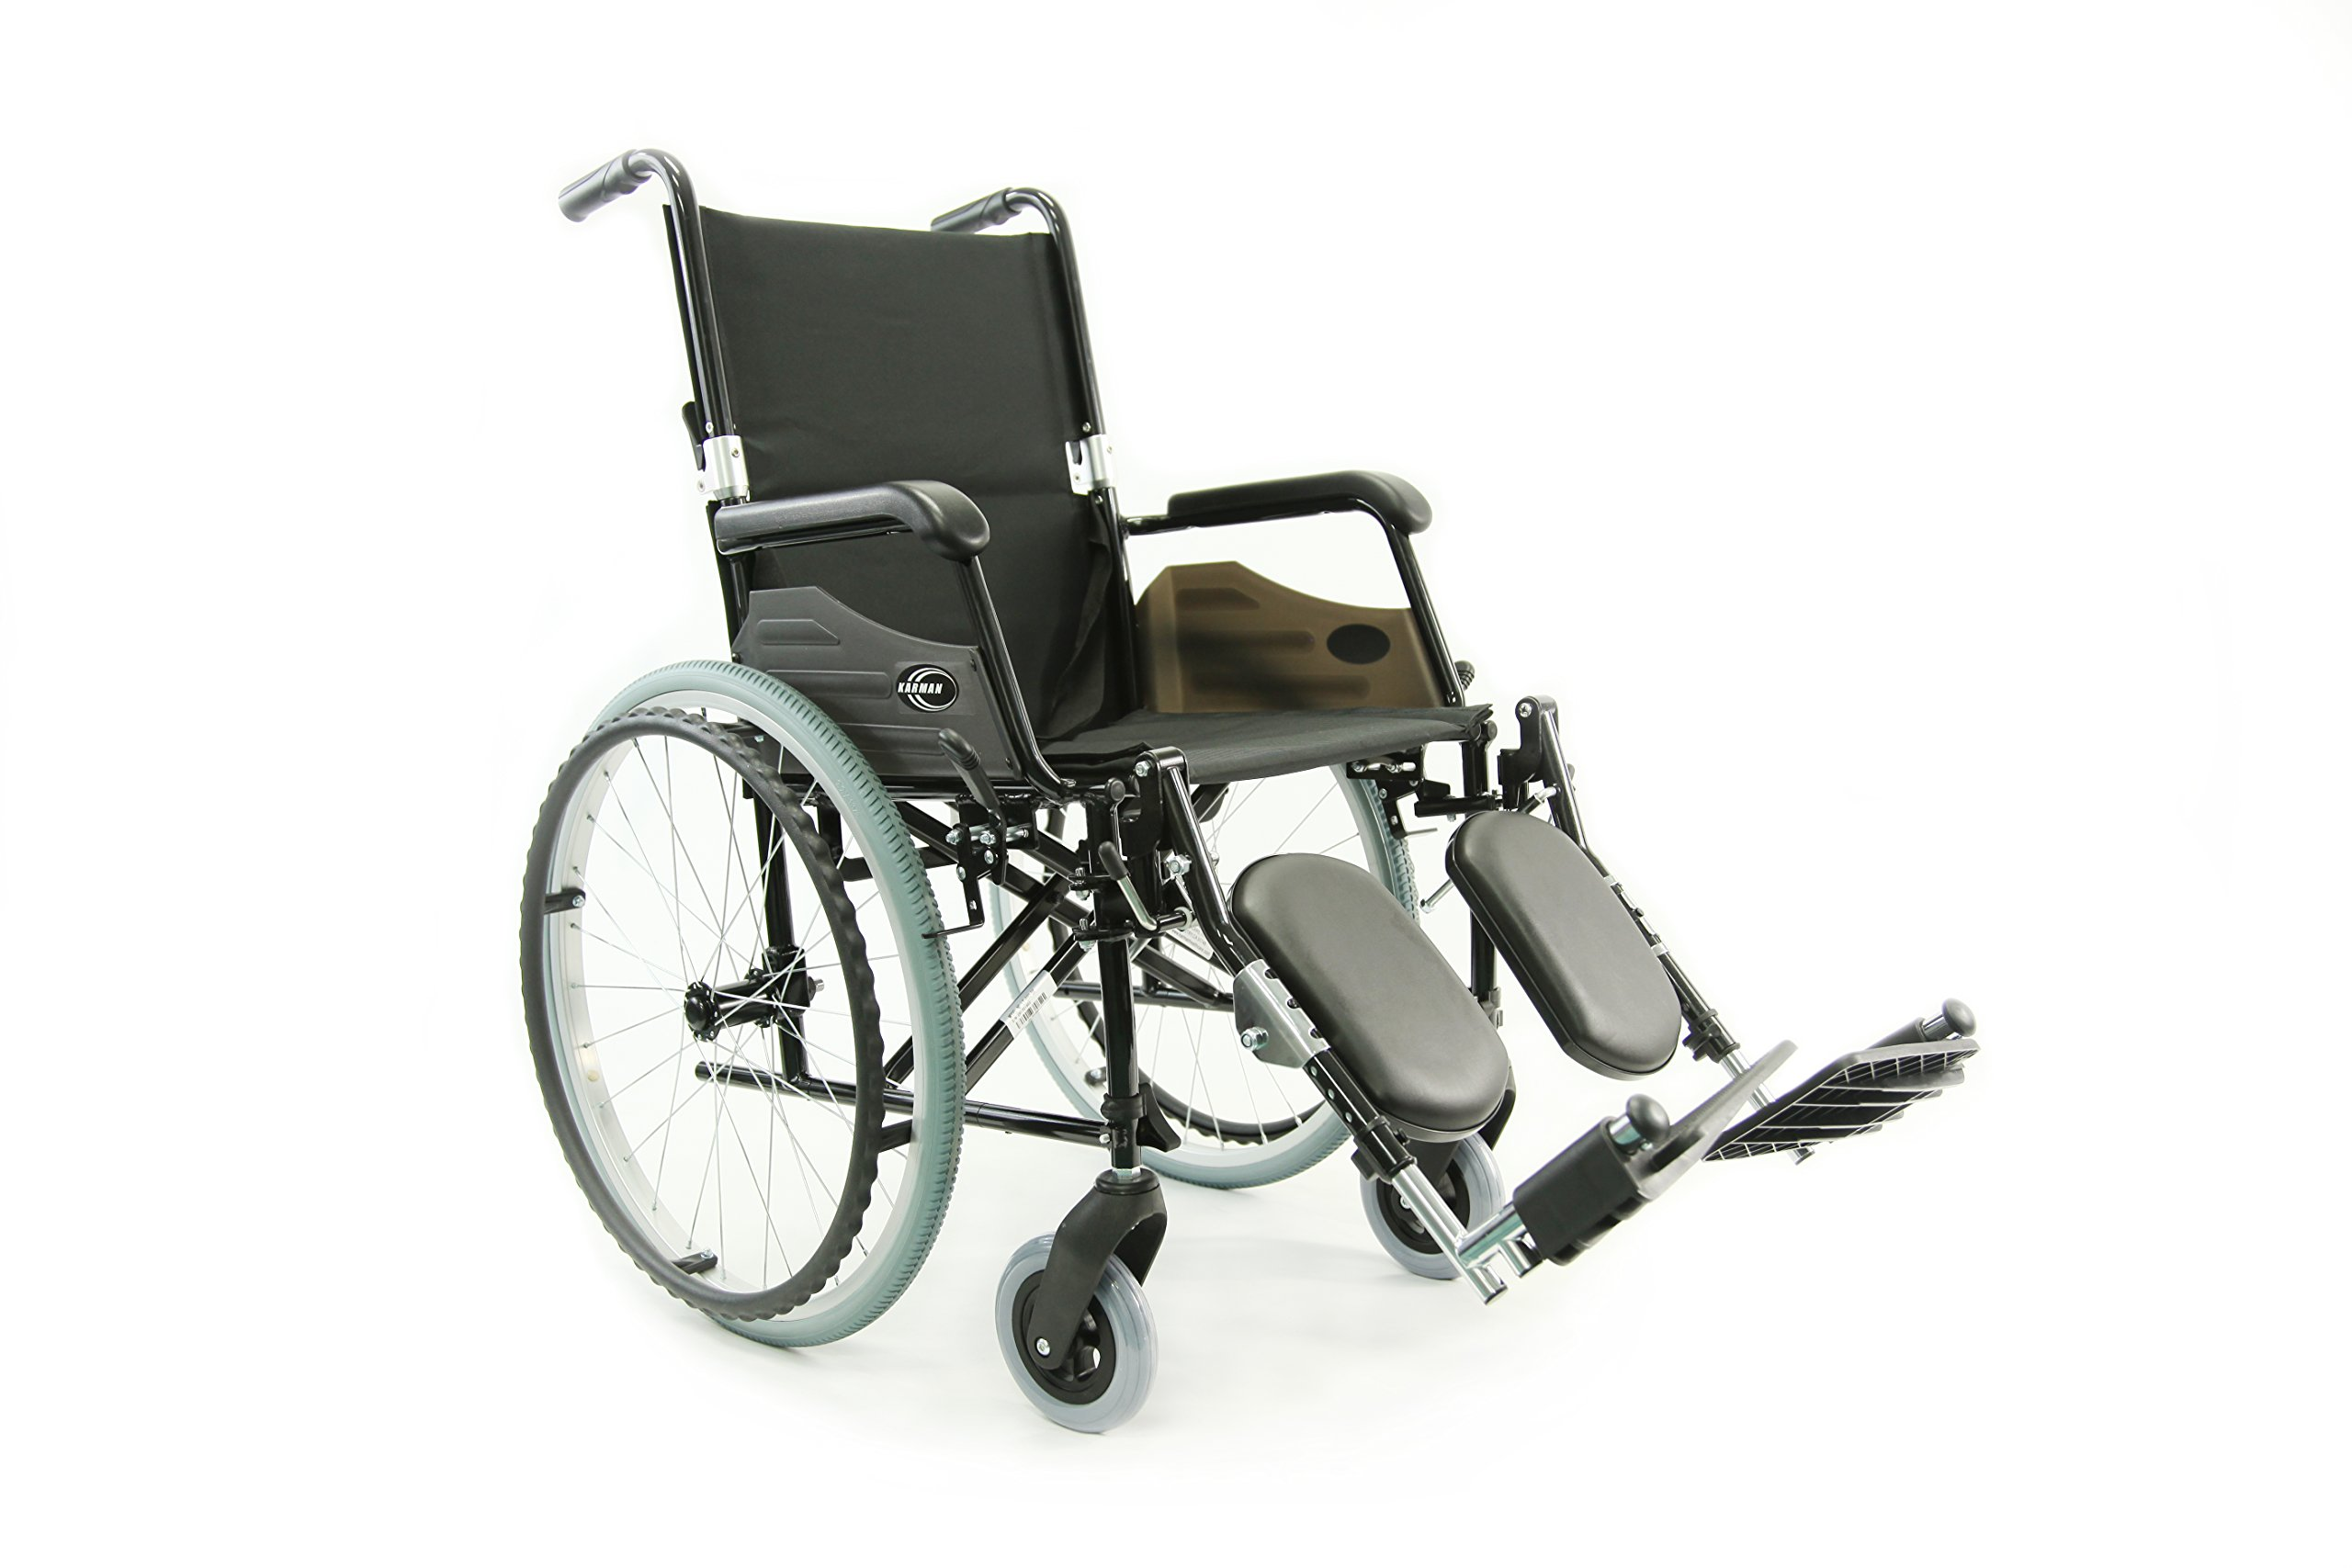 Karman Healthcare Wheelchair with Quick Release, Axles and Elevating Legrest, Black, 24 Pound